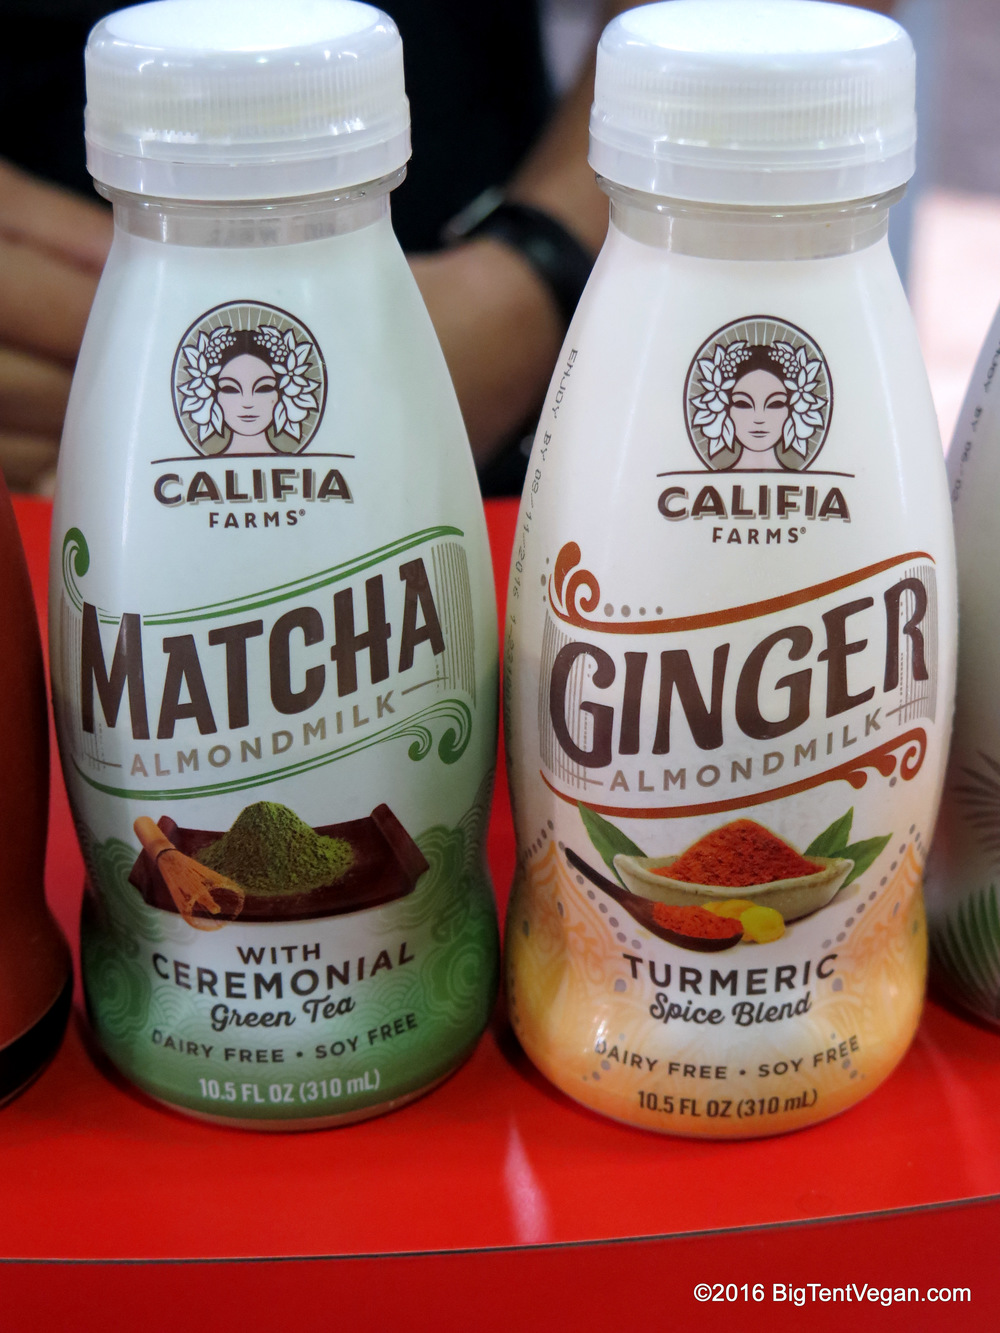 Calafia Farms Matcha & Ginger Almond Milk